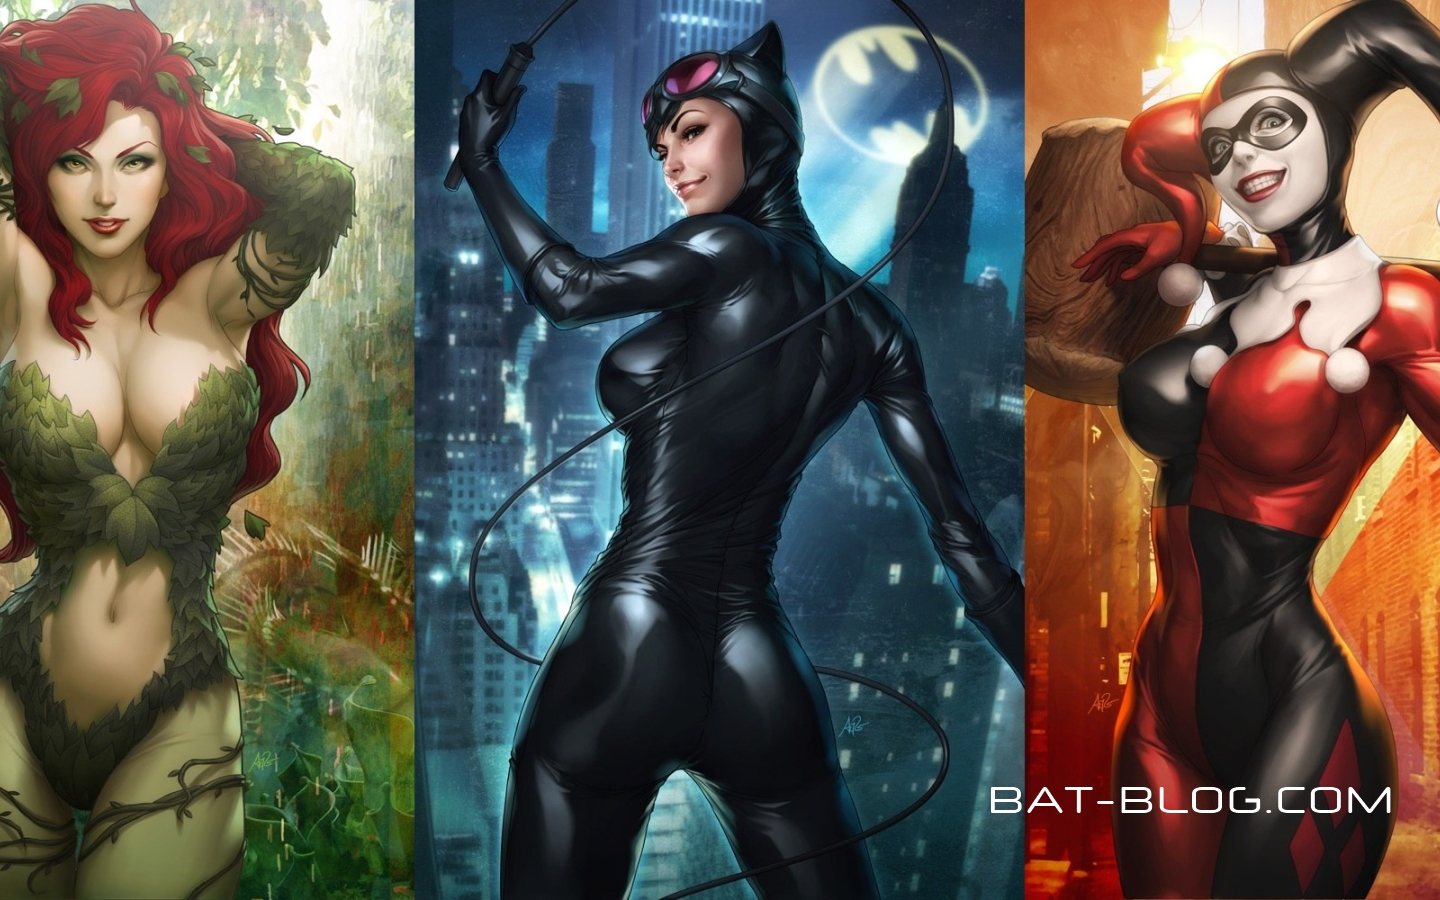 catwoman the dark knight rises wallpapers - The Dark Knight Rises wallpapers